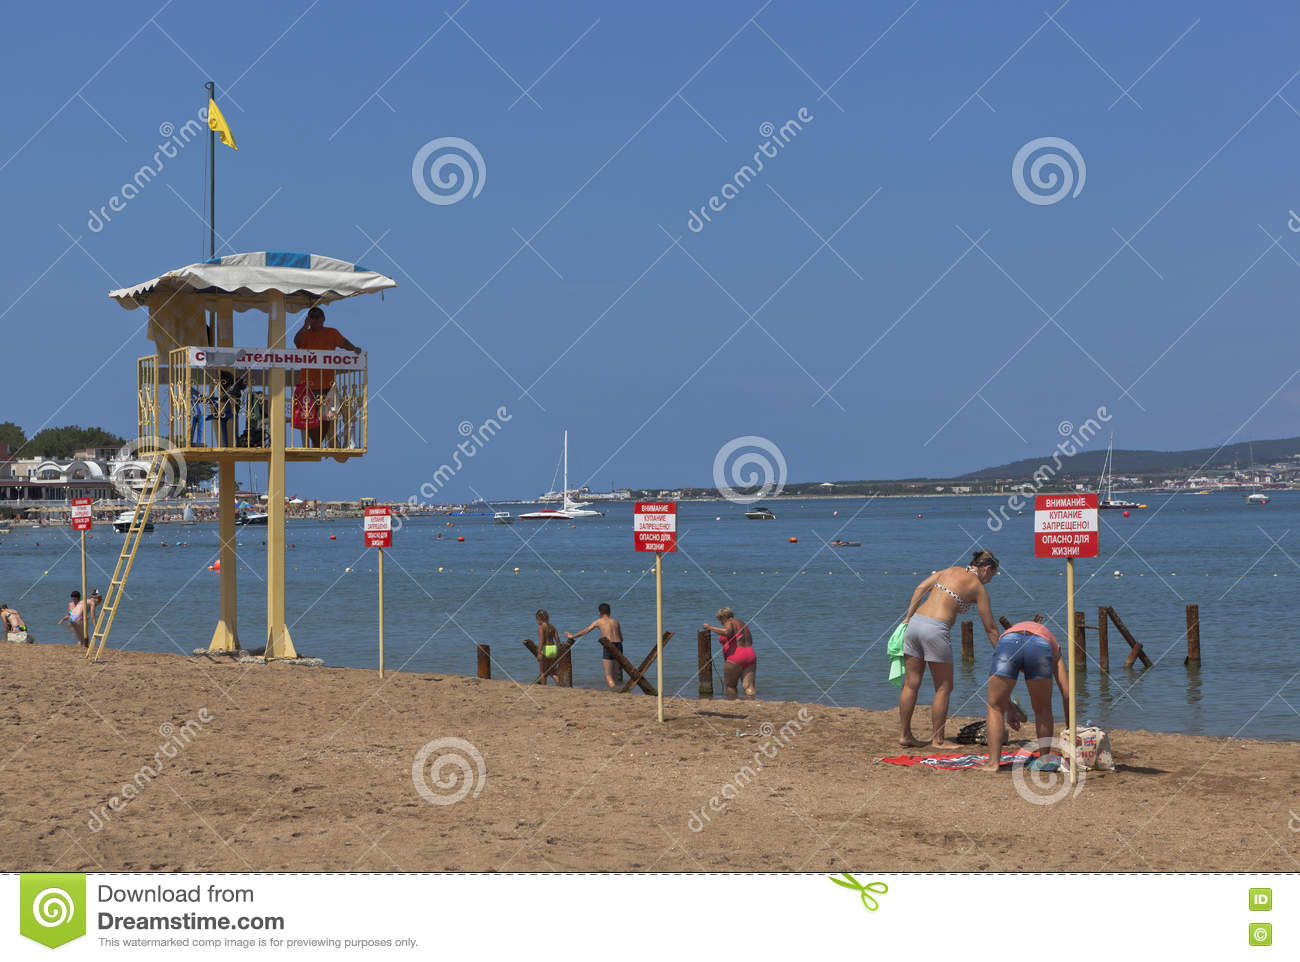 Vacationers people ignore the warning signs that says Warning! No swimming! Danger to life